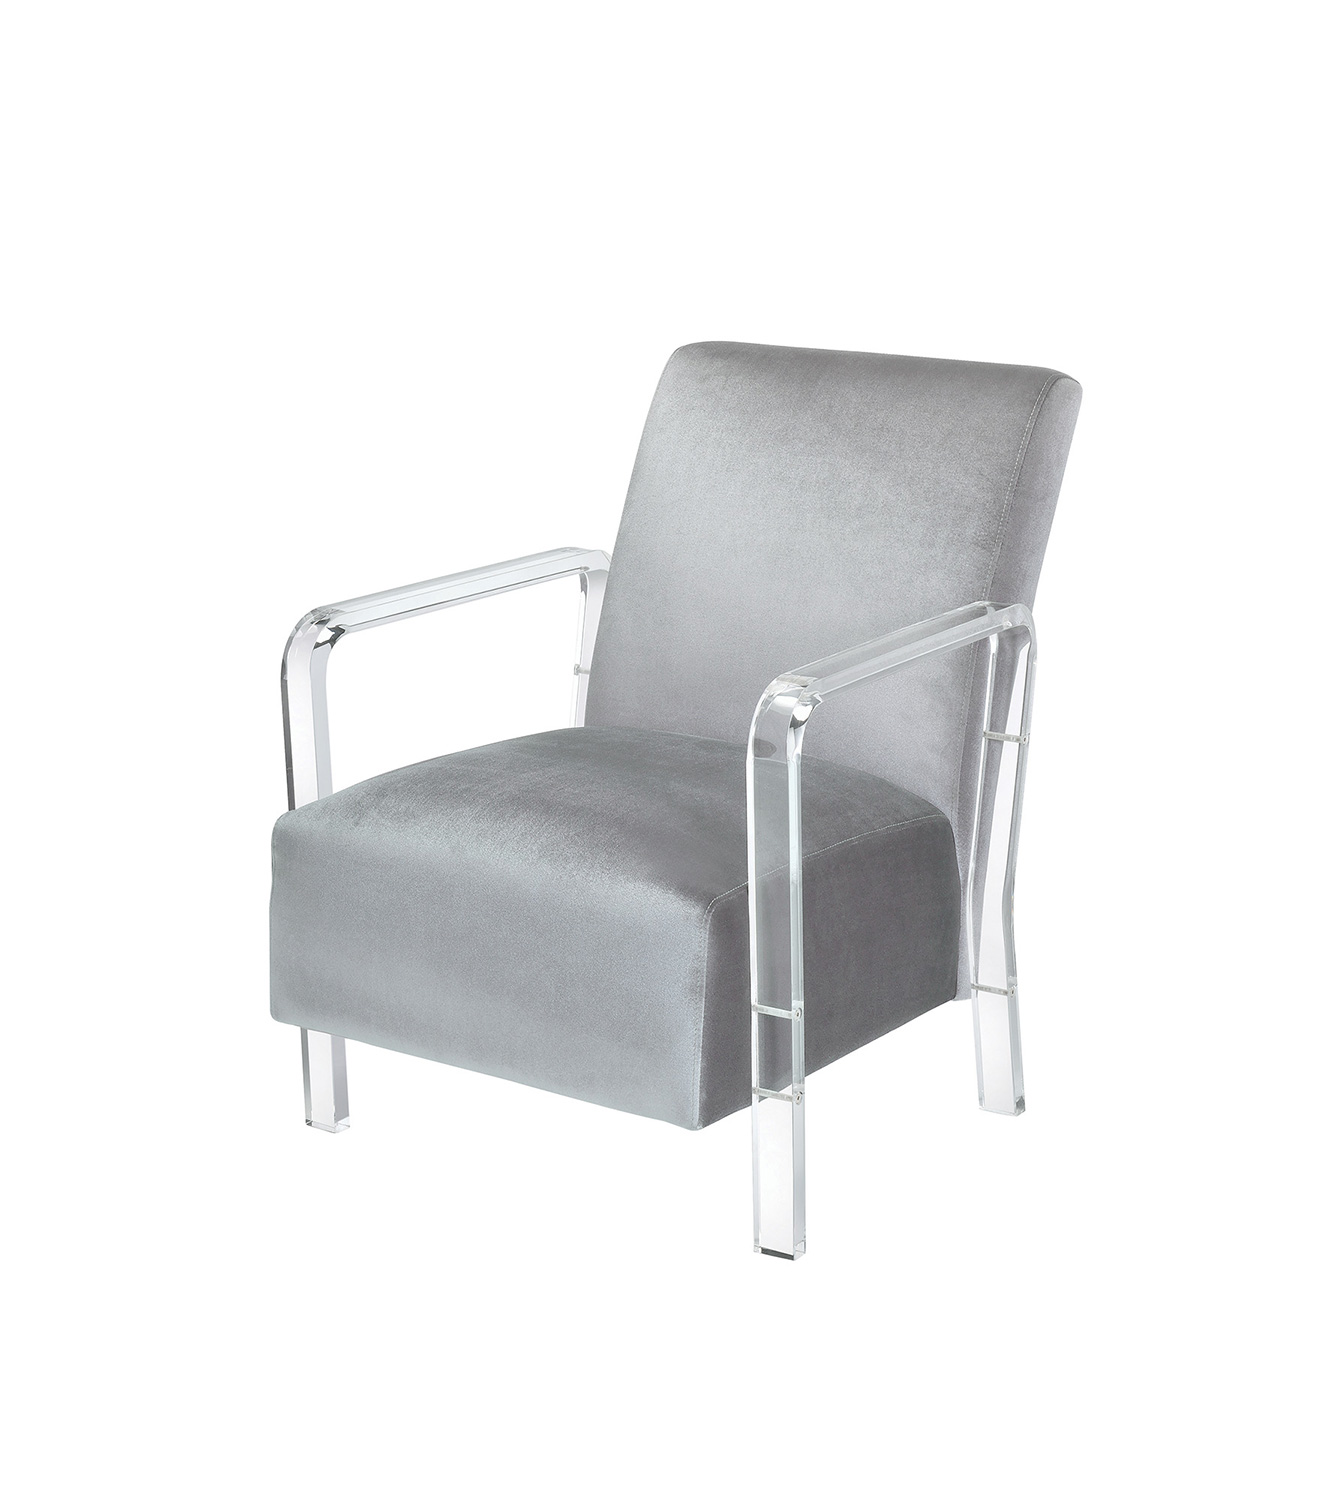 Coaster 903816 Accent Chair - Grey